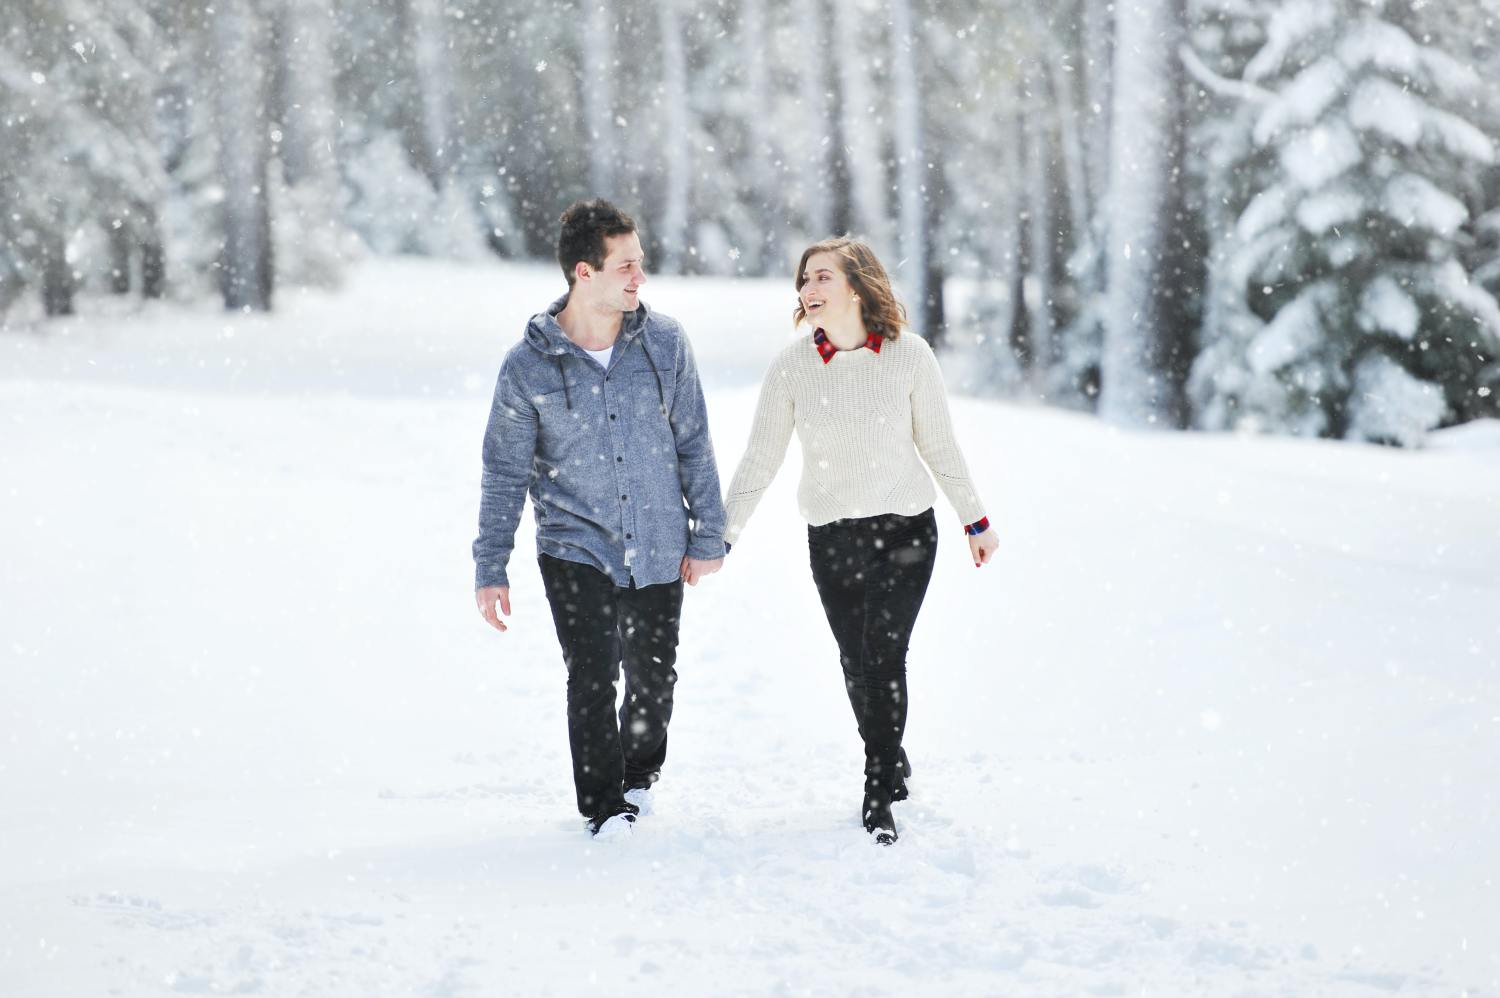 Mixed Signals From A Girl With A Boyfriend? Run!